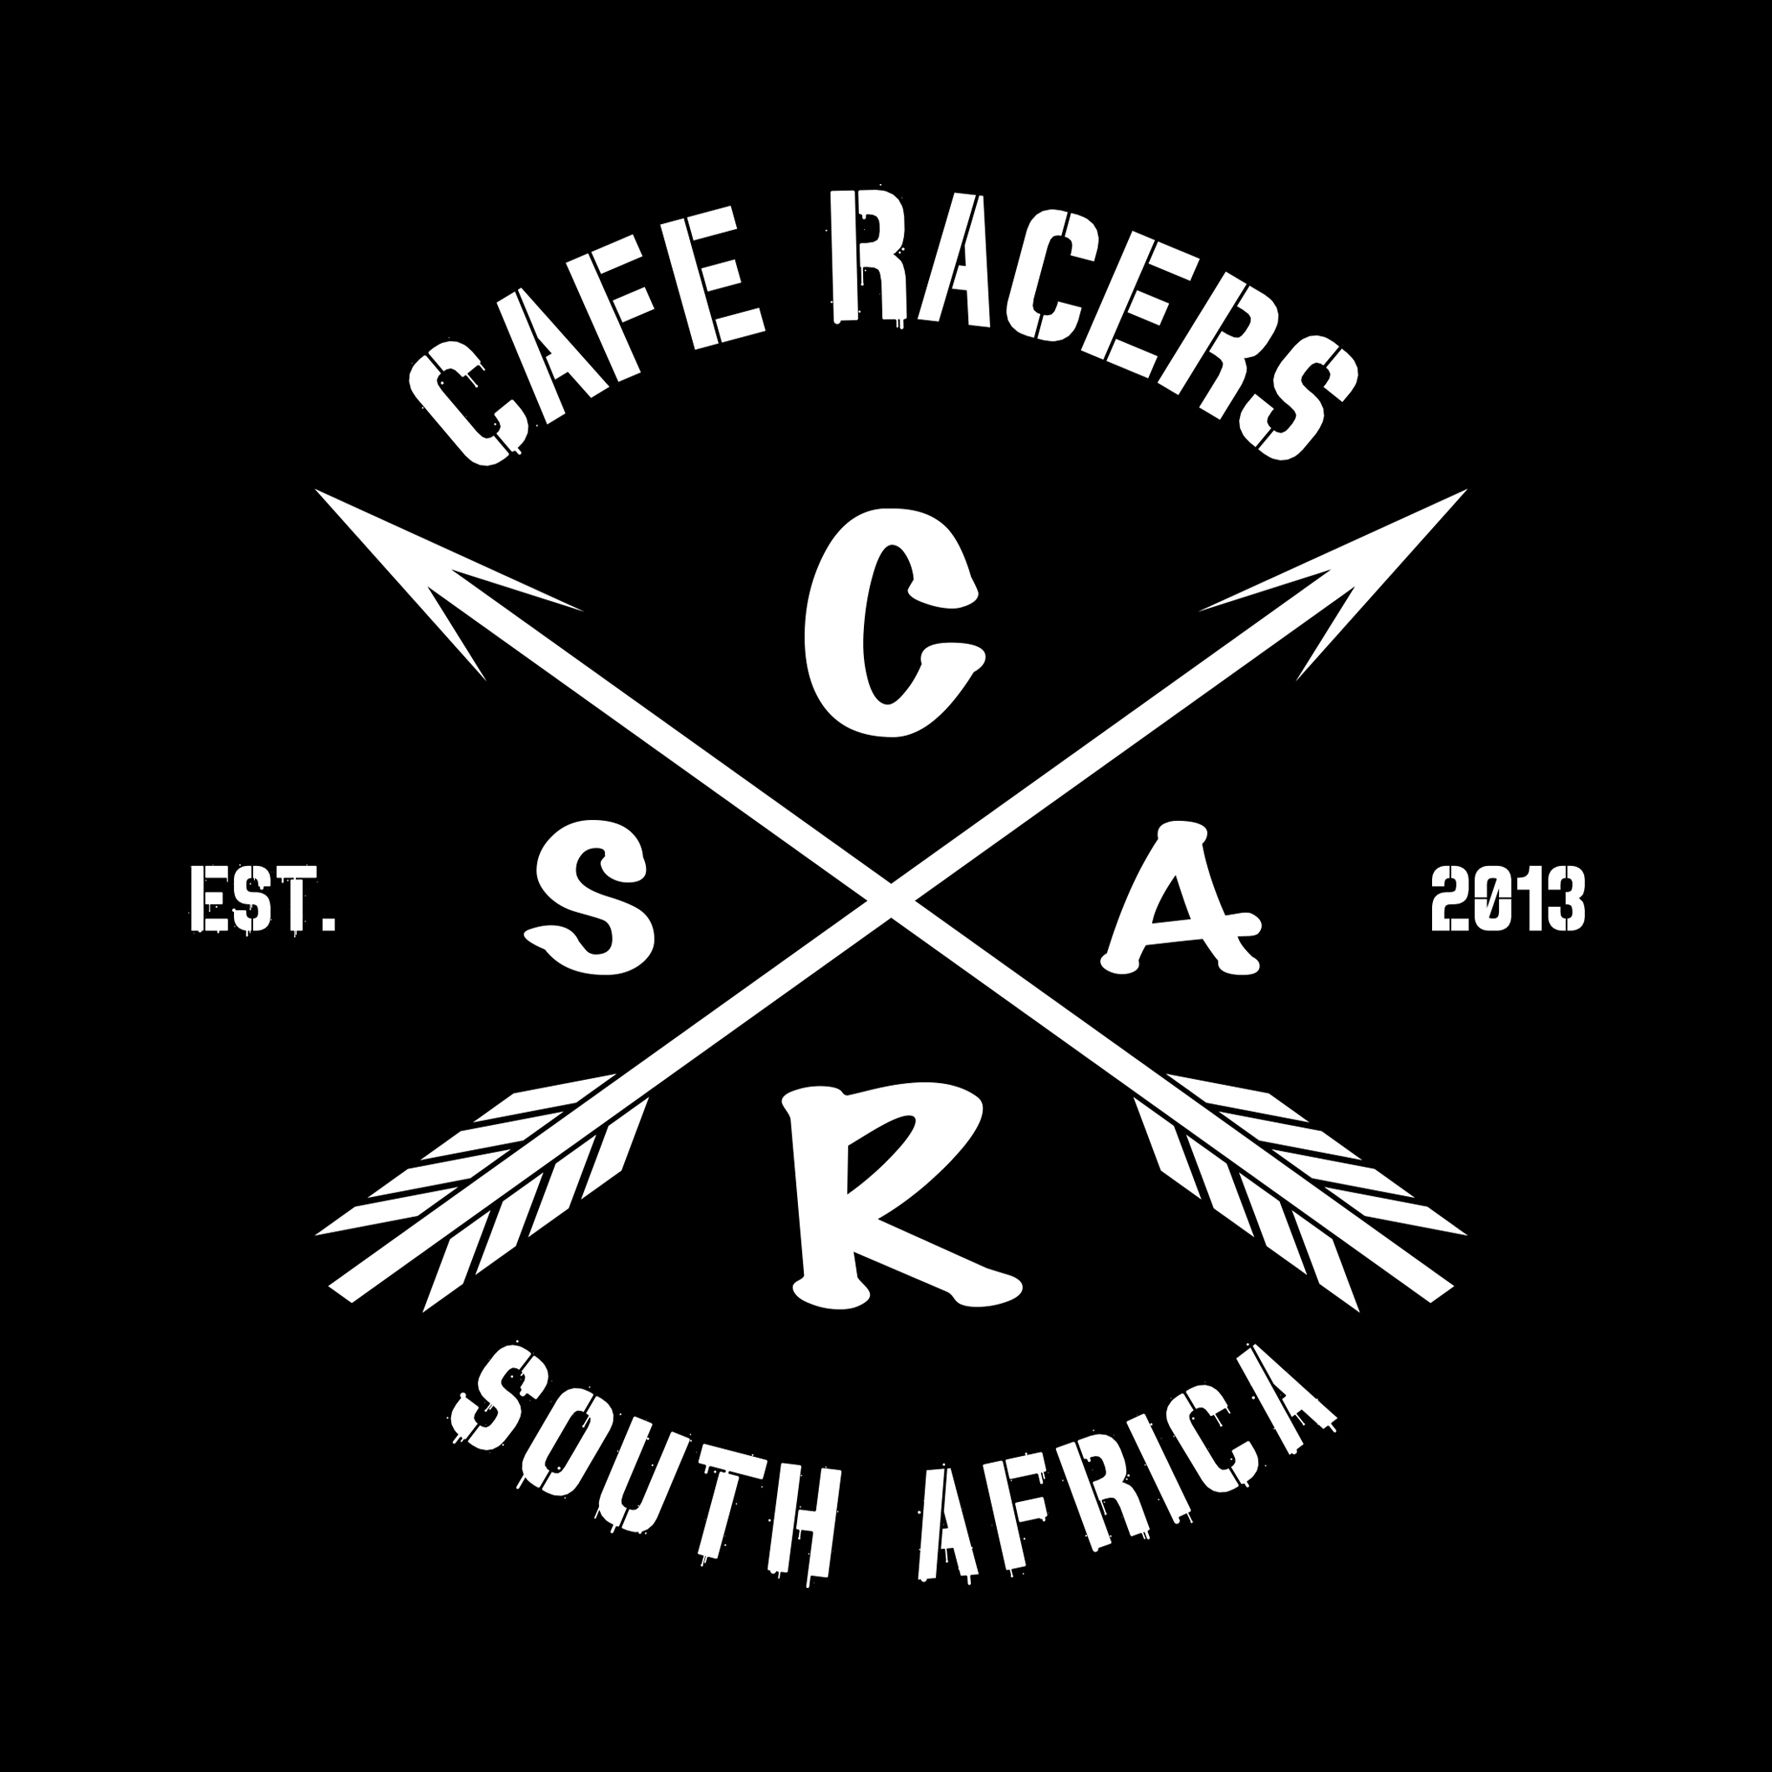 Caferacers sa logo for facebook page done and dusted nice work brad